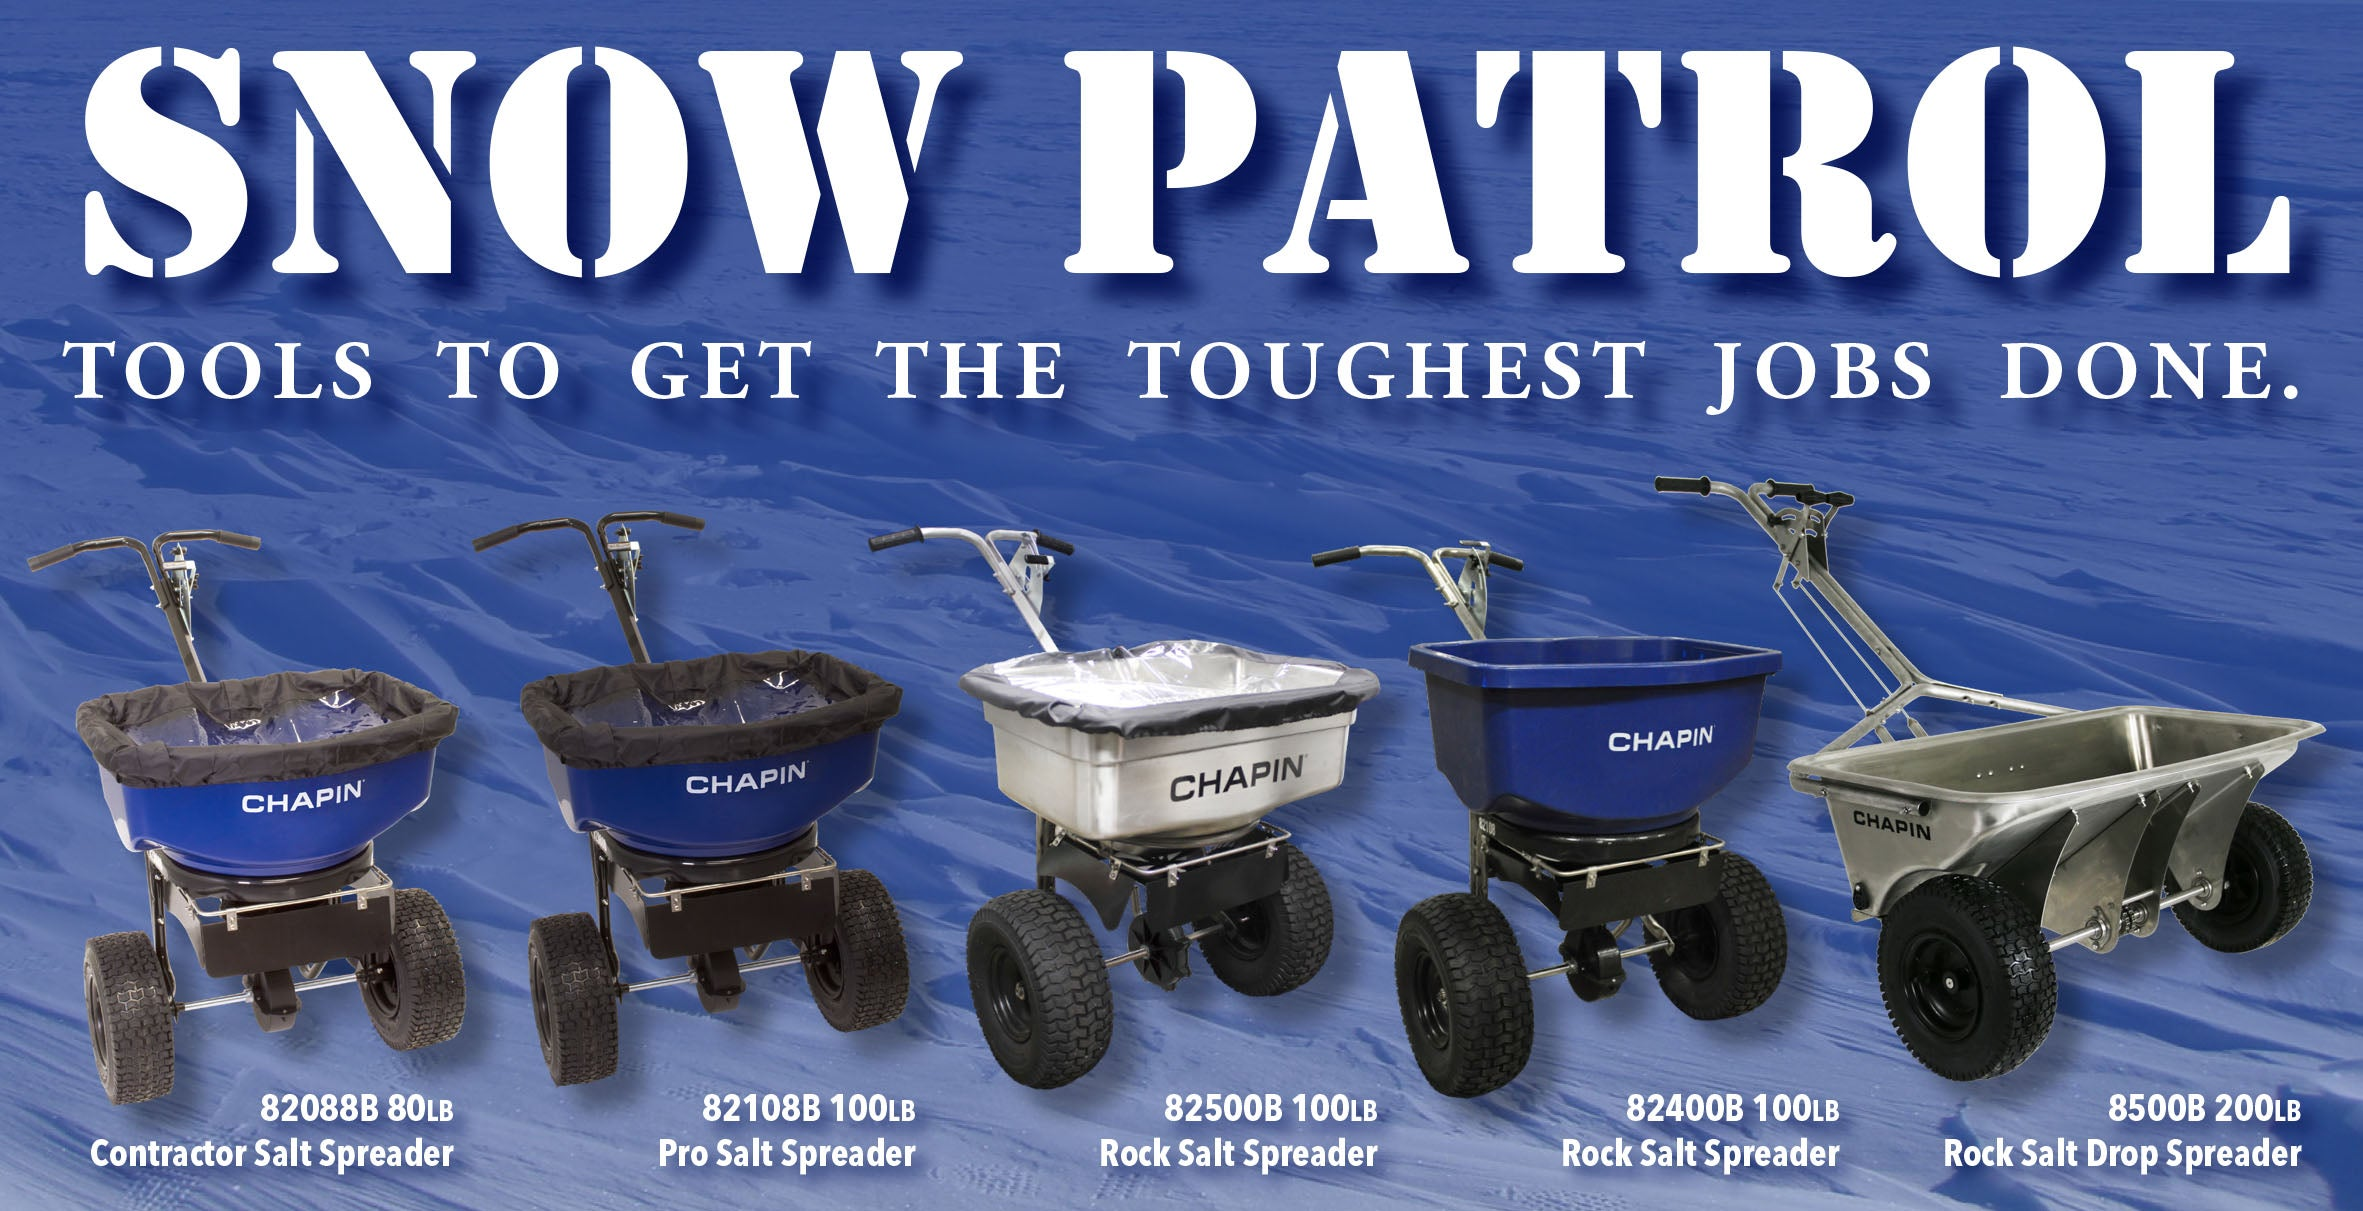 Snow Patrol - Tools to get the toughest jobs done - Chapin Professional Salt Spreader line up